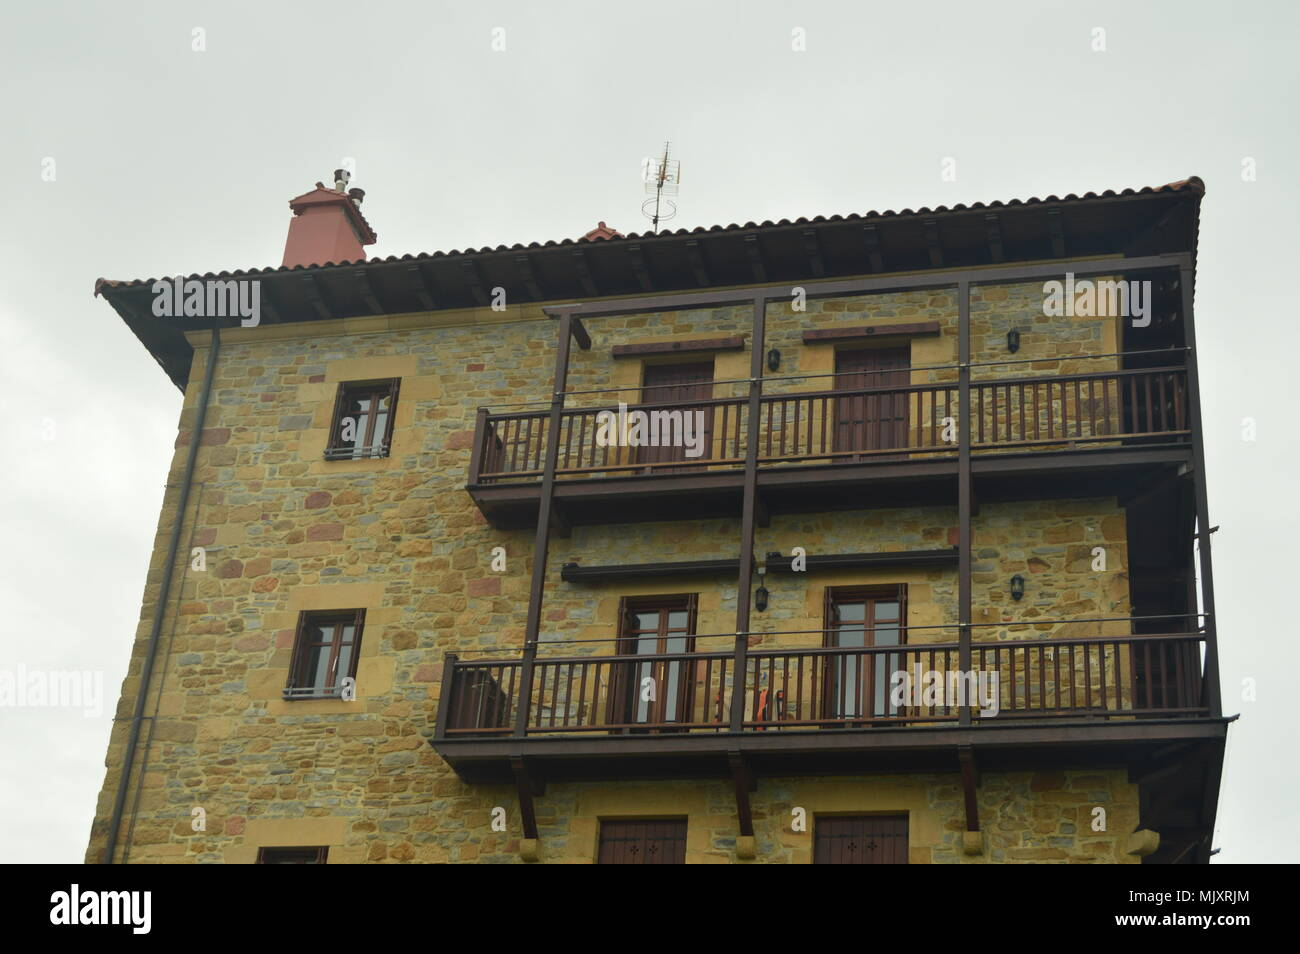 Picturesque And Typical Building In The Fortified Town Of Getaria. Architecture Middle Ages Travel. March 26, 2018. Getaria Guipuzcoa Basque Country S - Stock Image